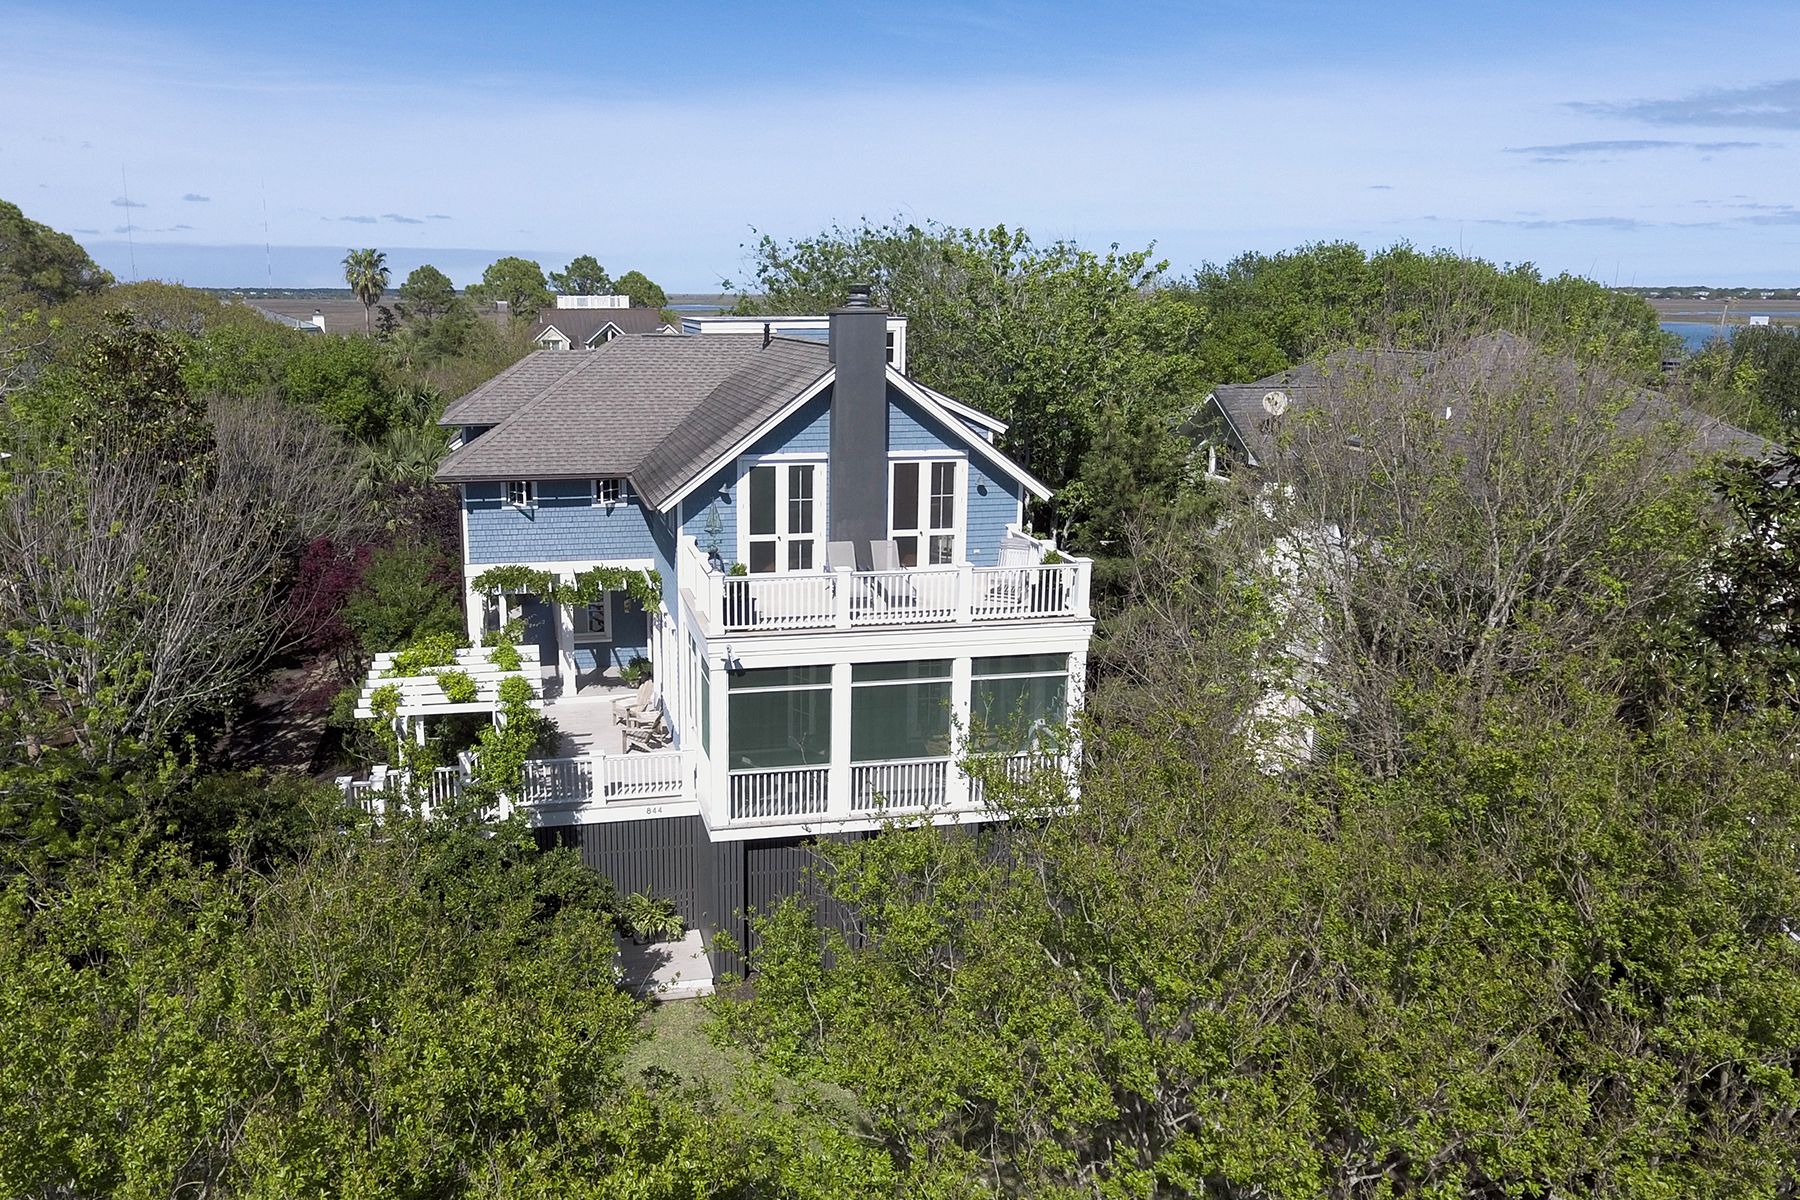 Single Family Home for Sale at 844 Middle Street Sullivans Island, South Carolina, 29482 United States